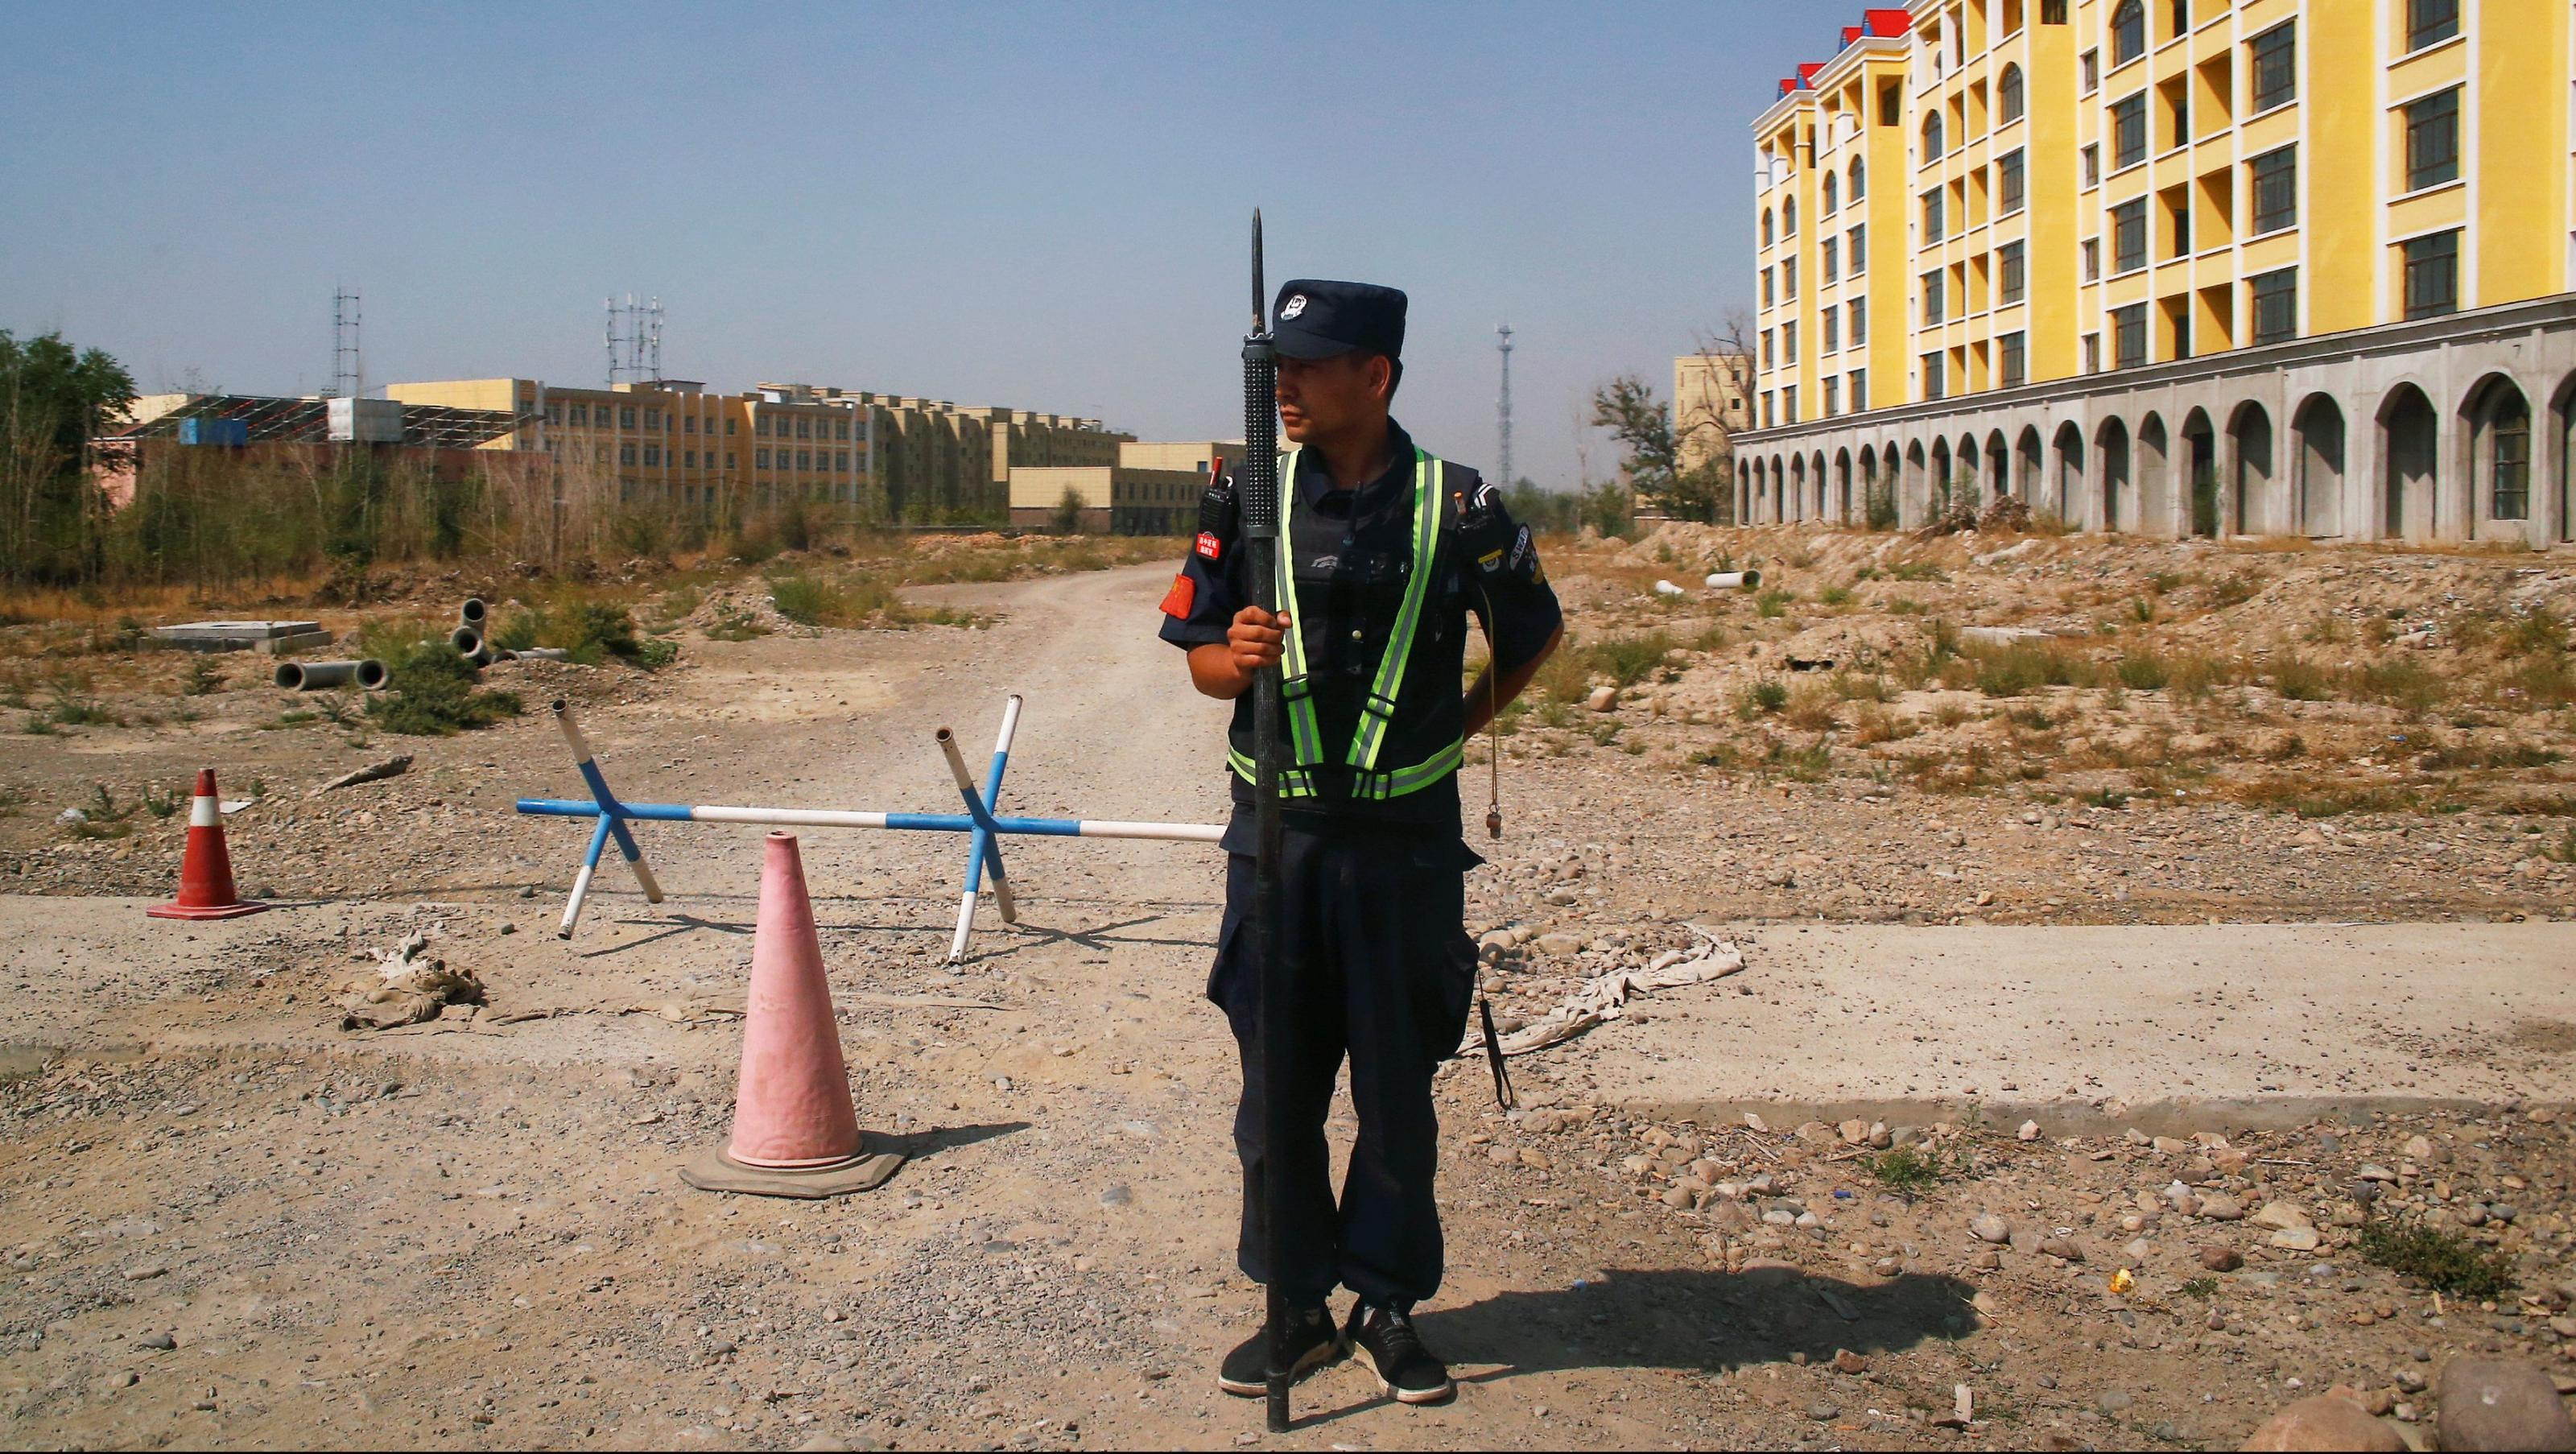 African leaders defend China arrests of Uyghur Muslims in Xinjiang